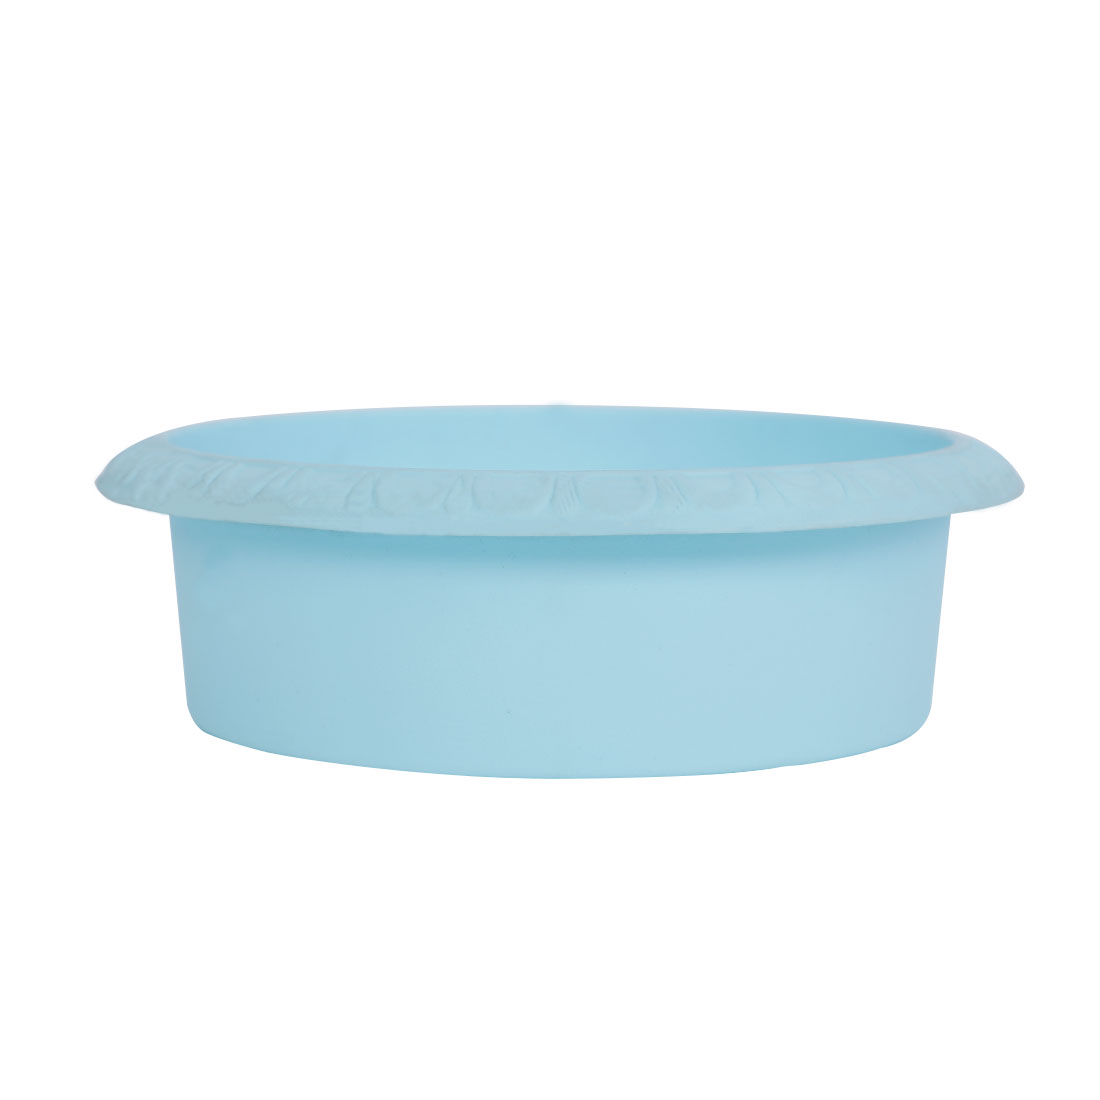 Home Office Garden Plastic Bowl Shaped Aloes Cactus Plant Flower Pot Baby Blue